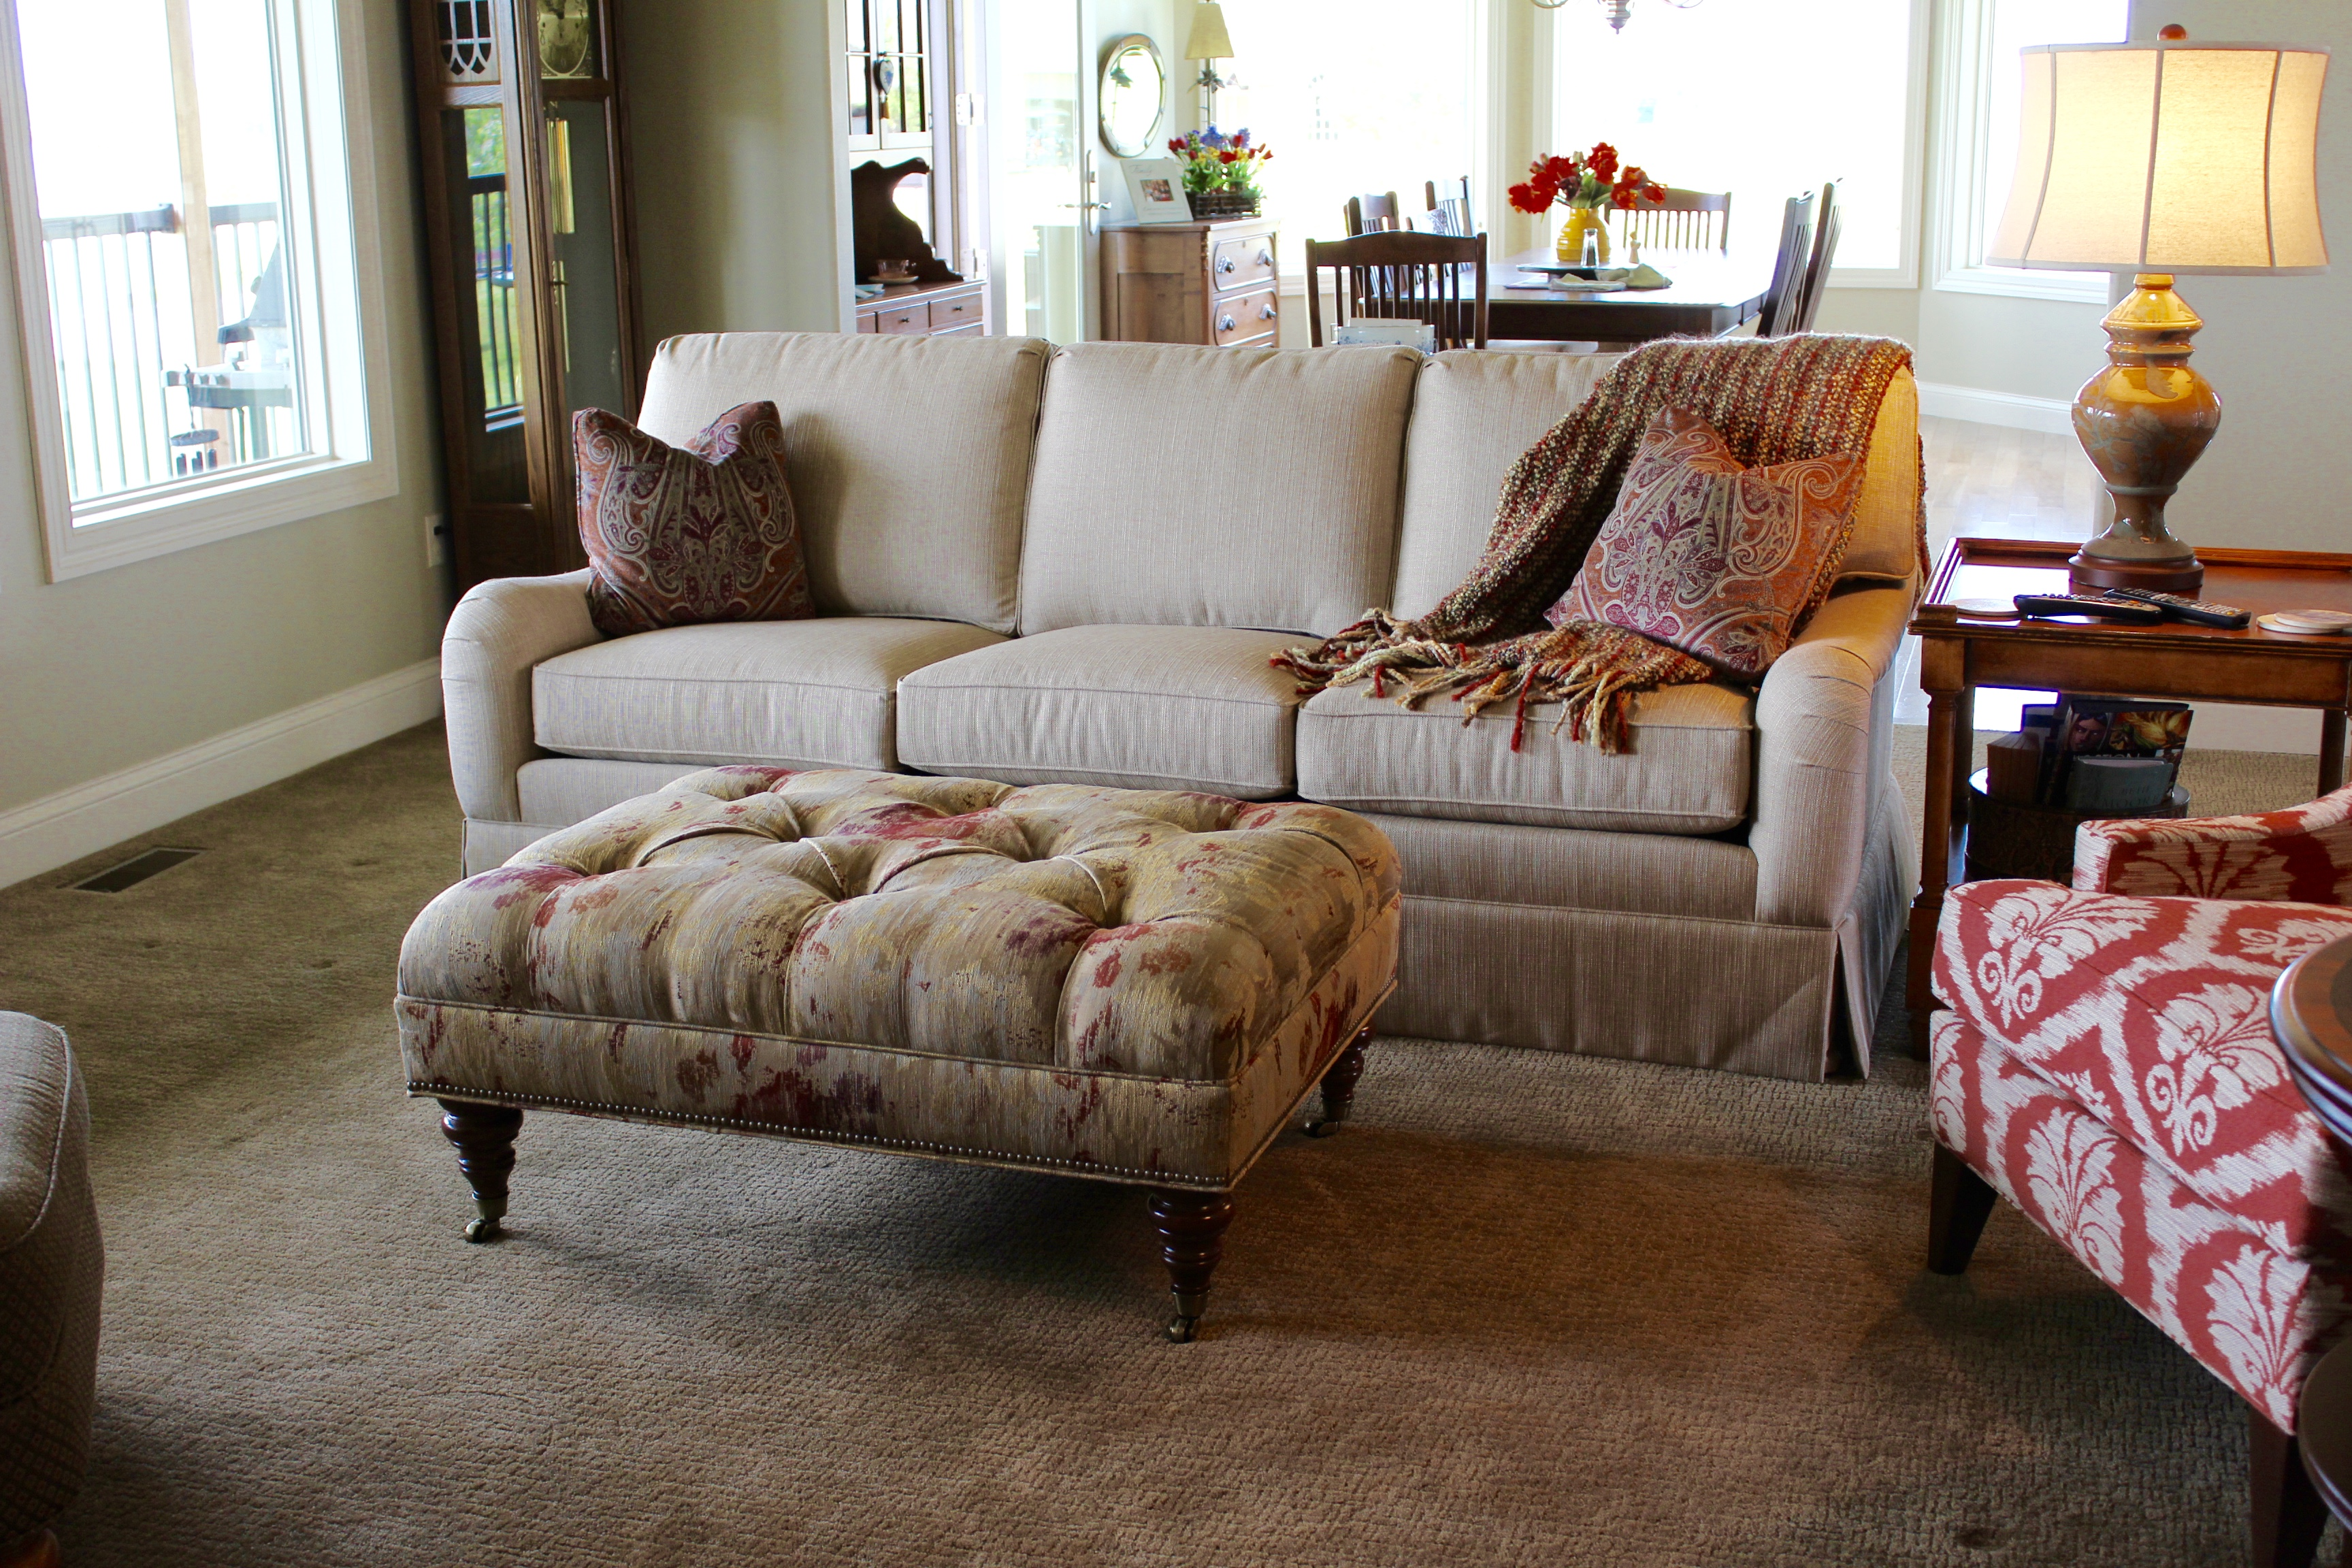 Custom living room upholstery